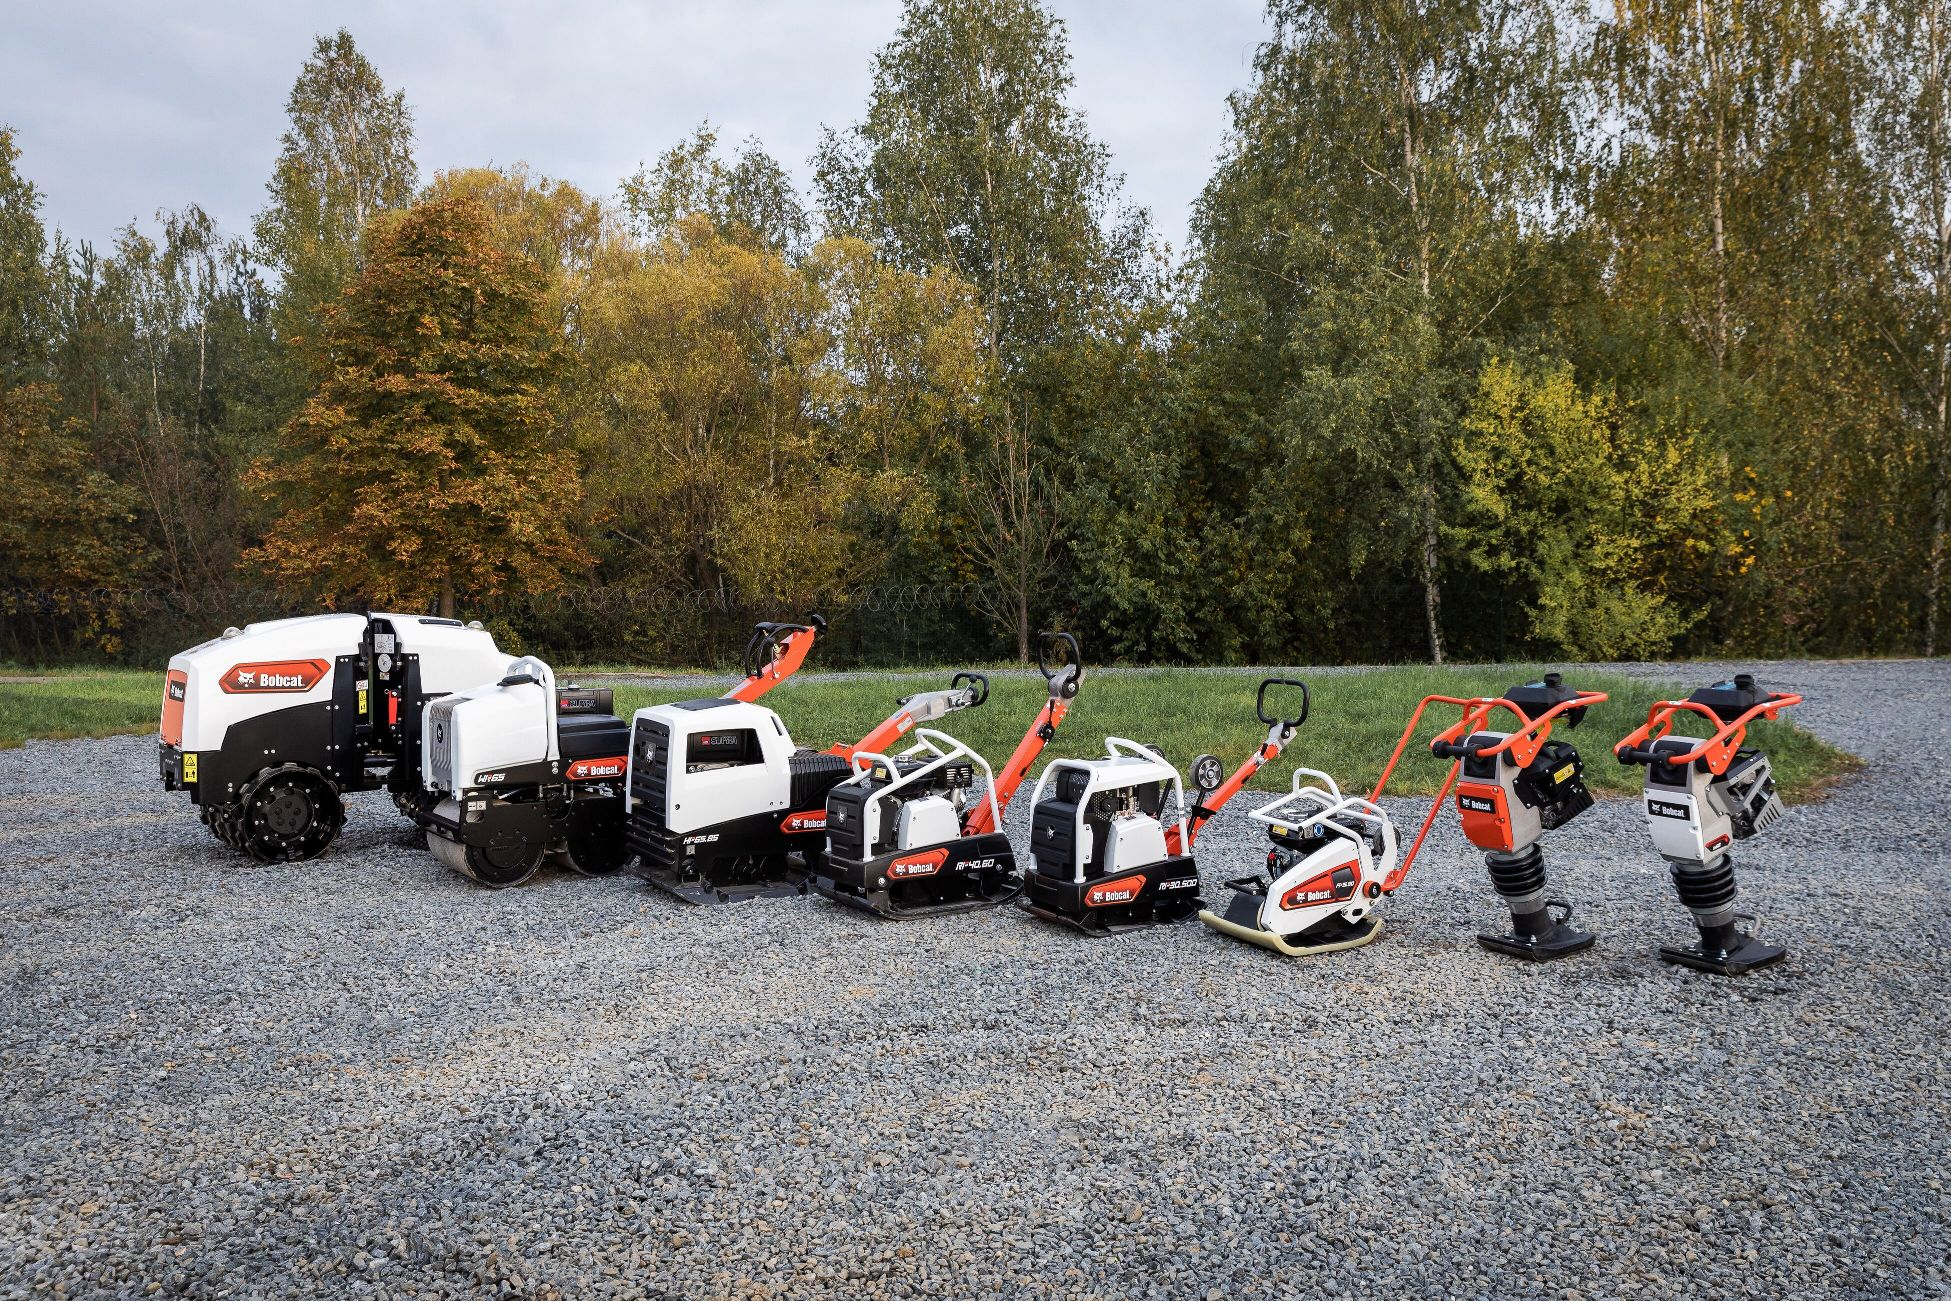 Bobcat Rolls Out New Light Compaction Product Range